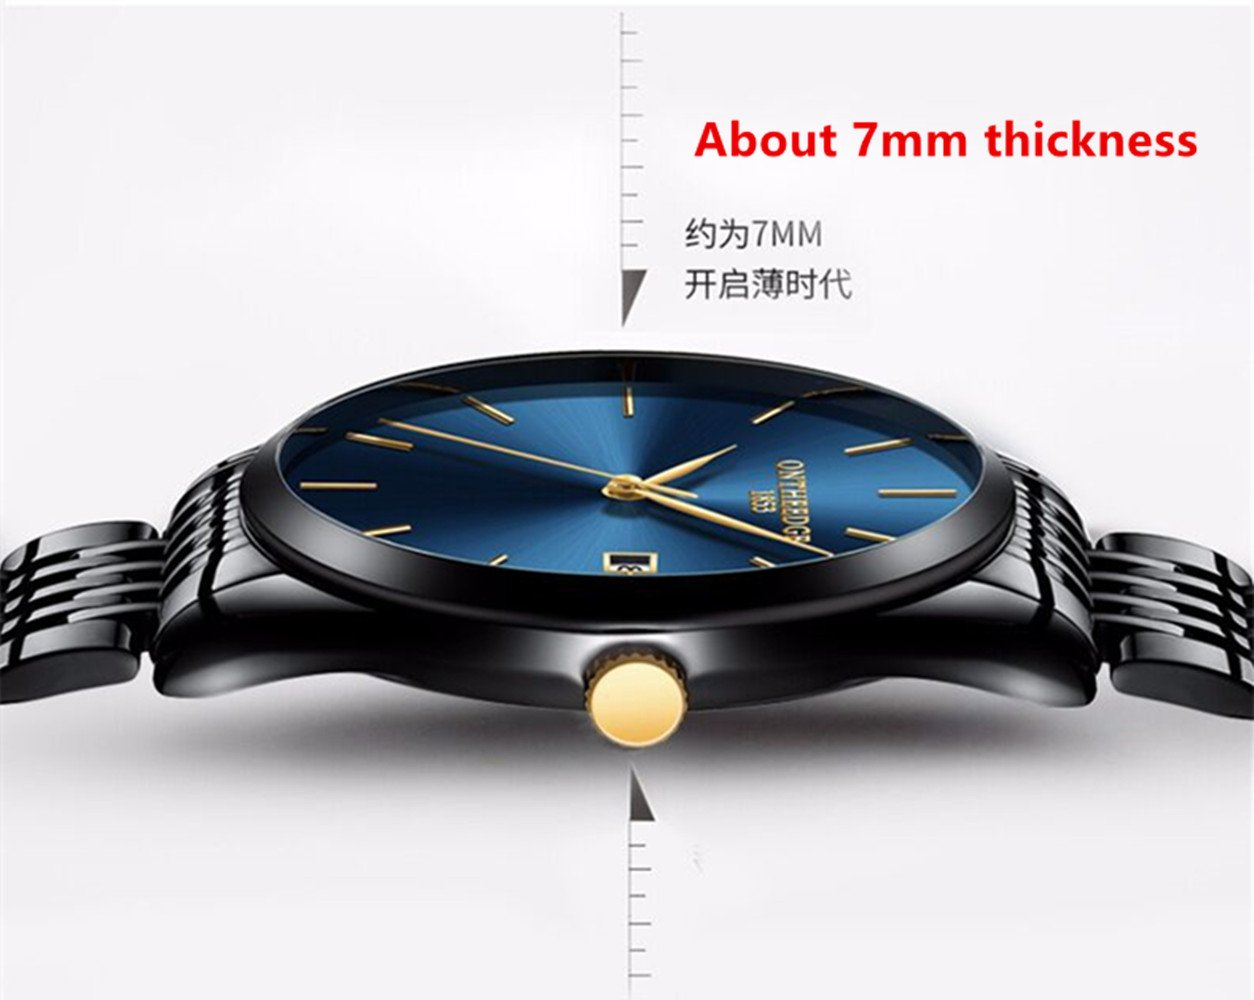 L& H Jewelry Mens Business Watch Fashion Super Thin Quartz Movement Analog Watch Pointer Display Watch (Pure Blak) by L & H Jewelry (Image #3)